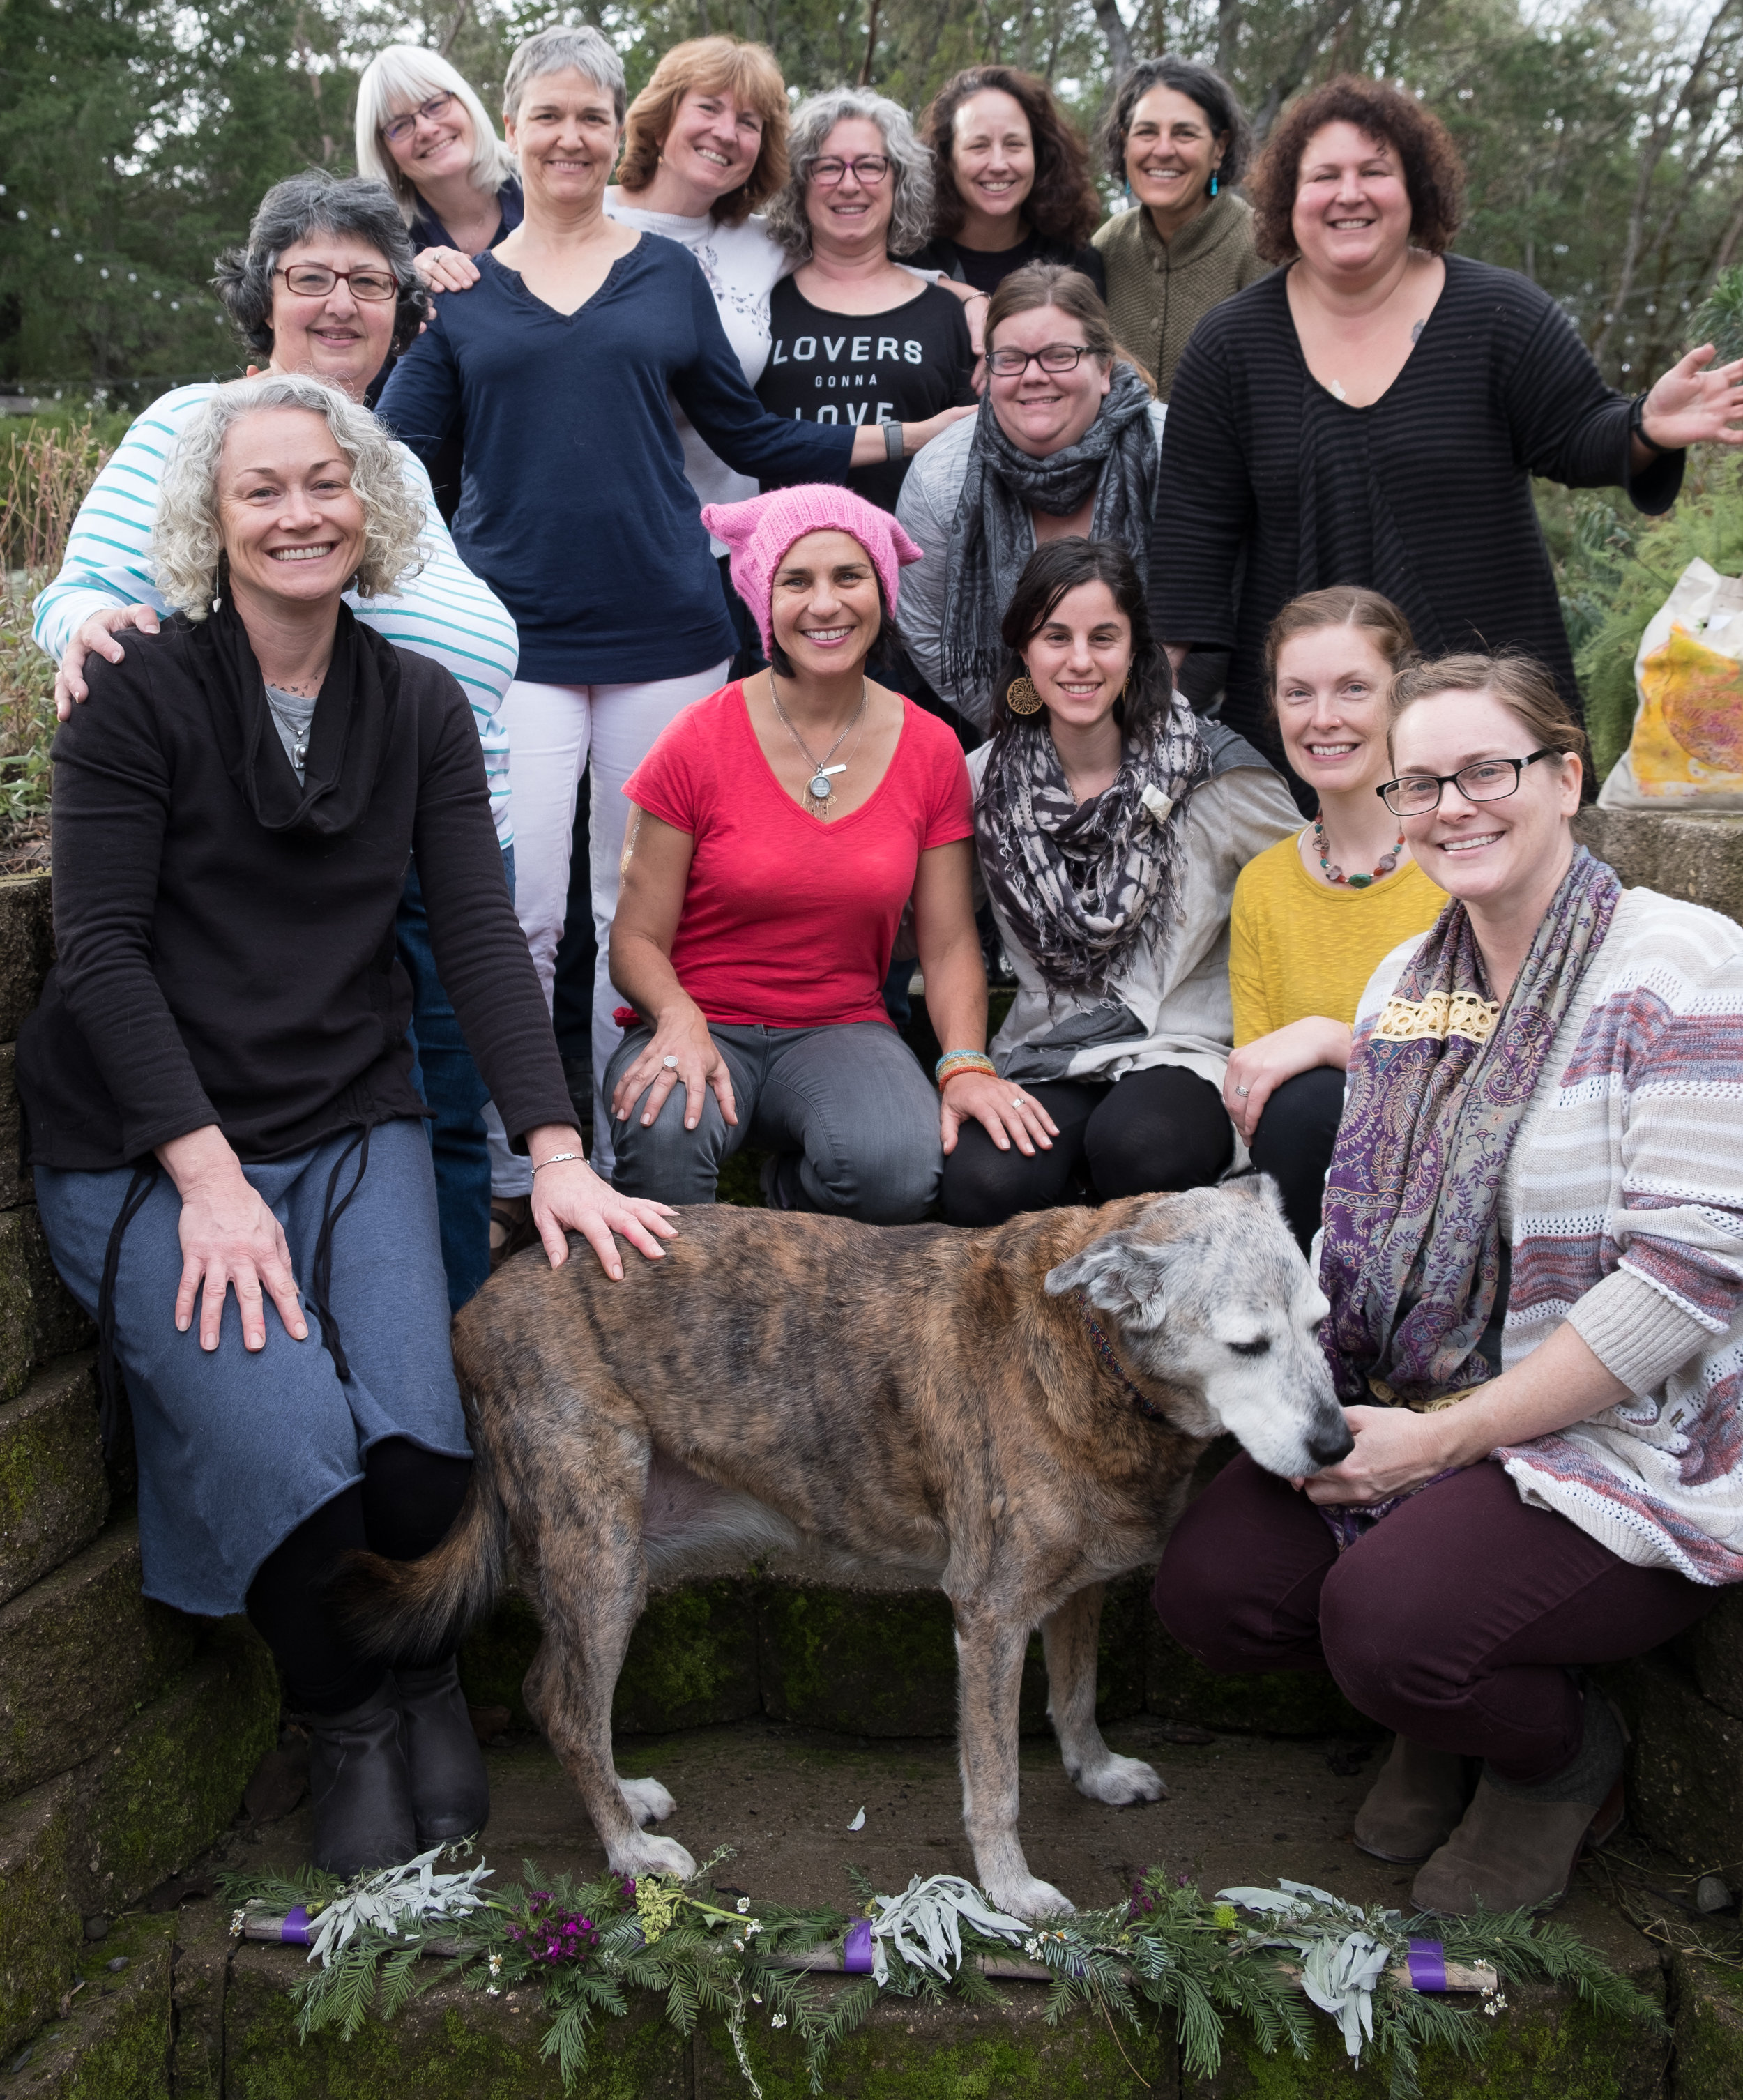 2017 soul journey new year_s eve creativity retreat group photo full size_cropped.jpg